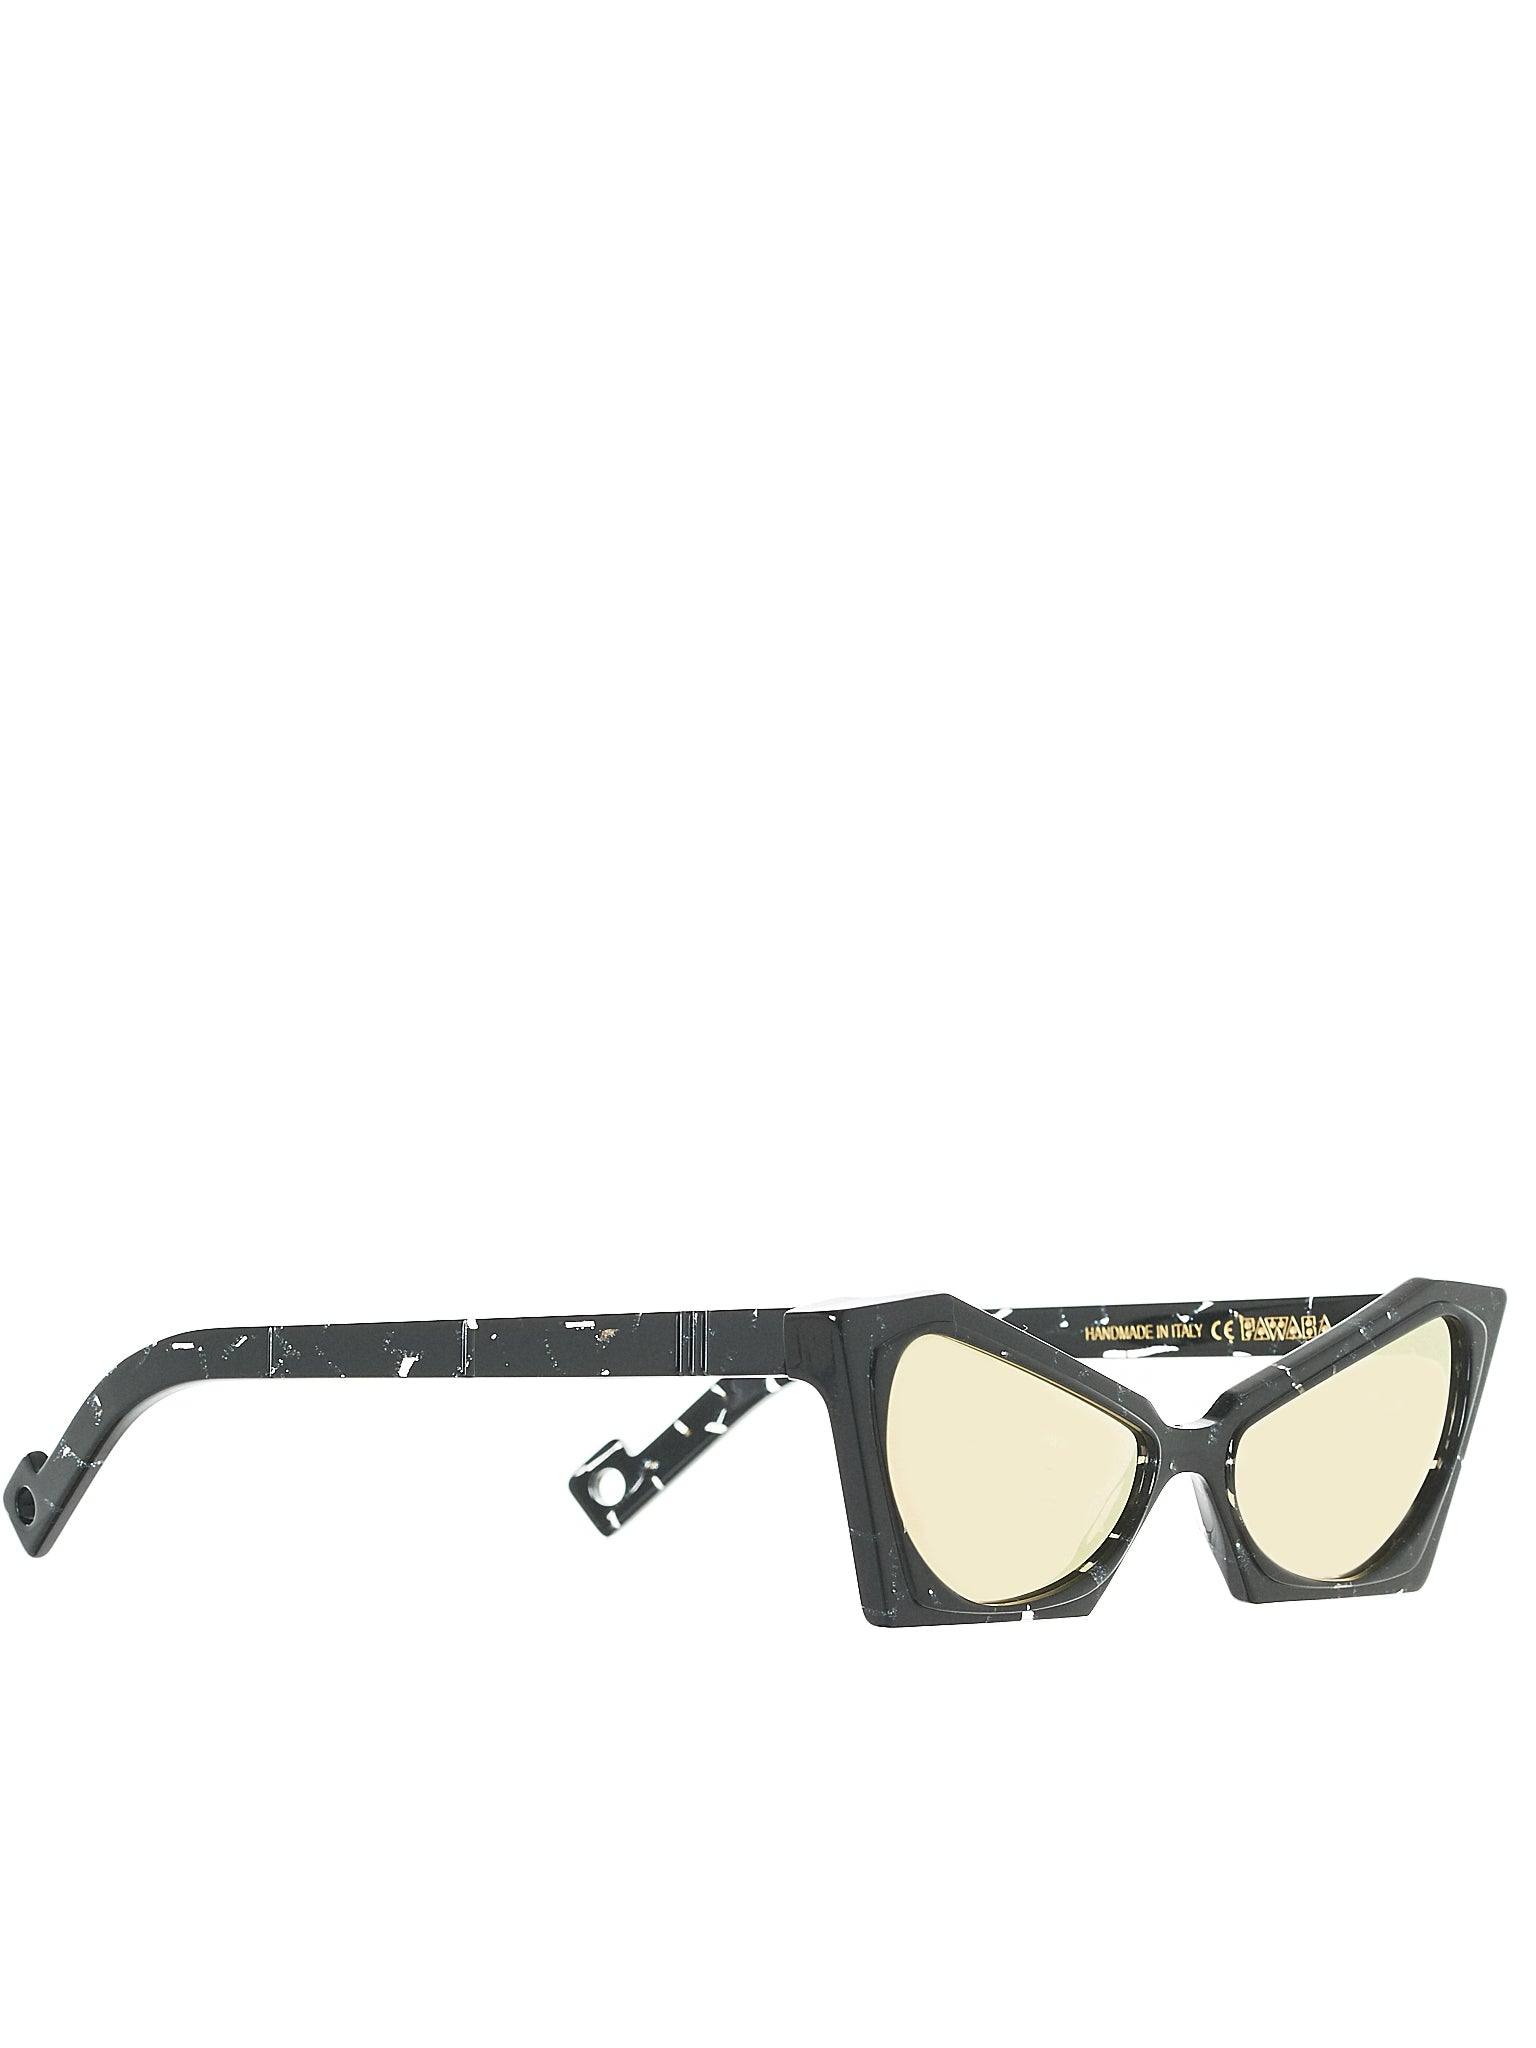 Pawaka Sunglasses - Hlorenzo Side